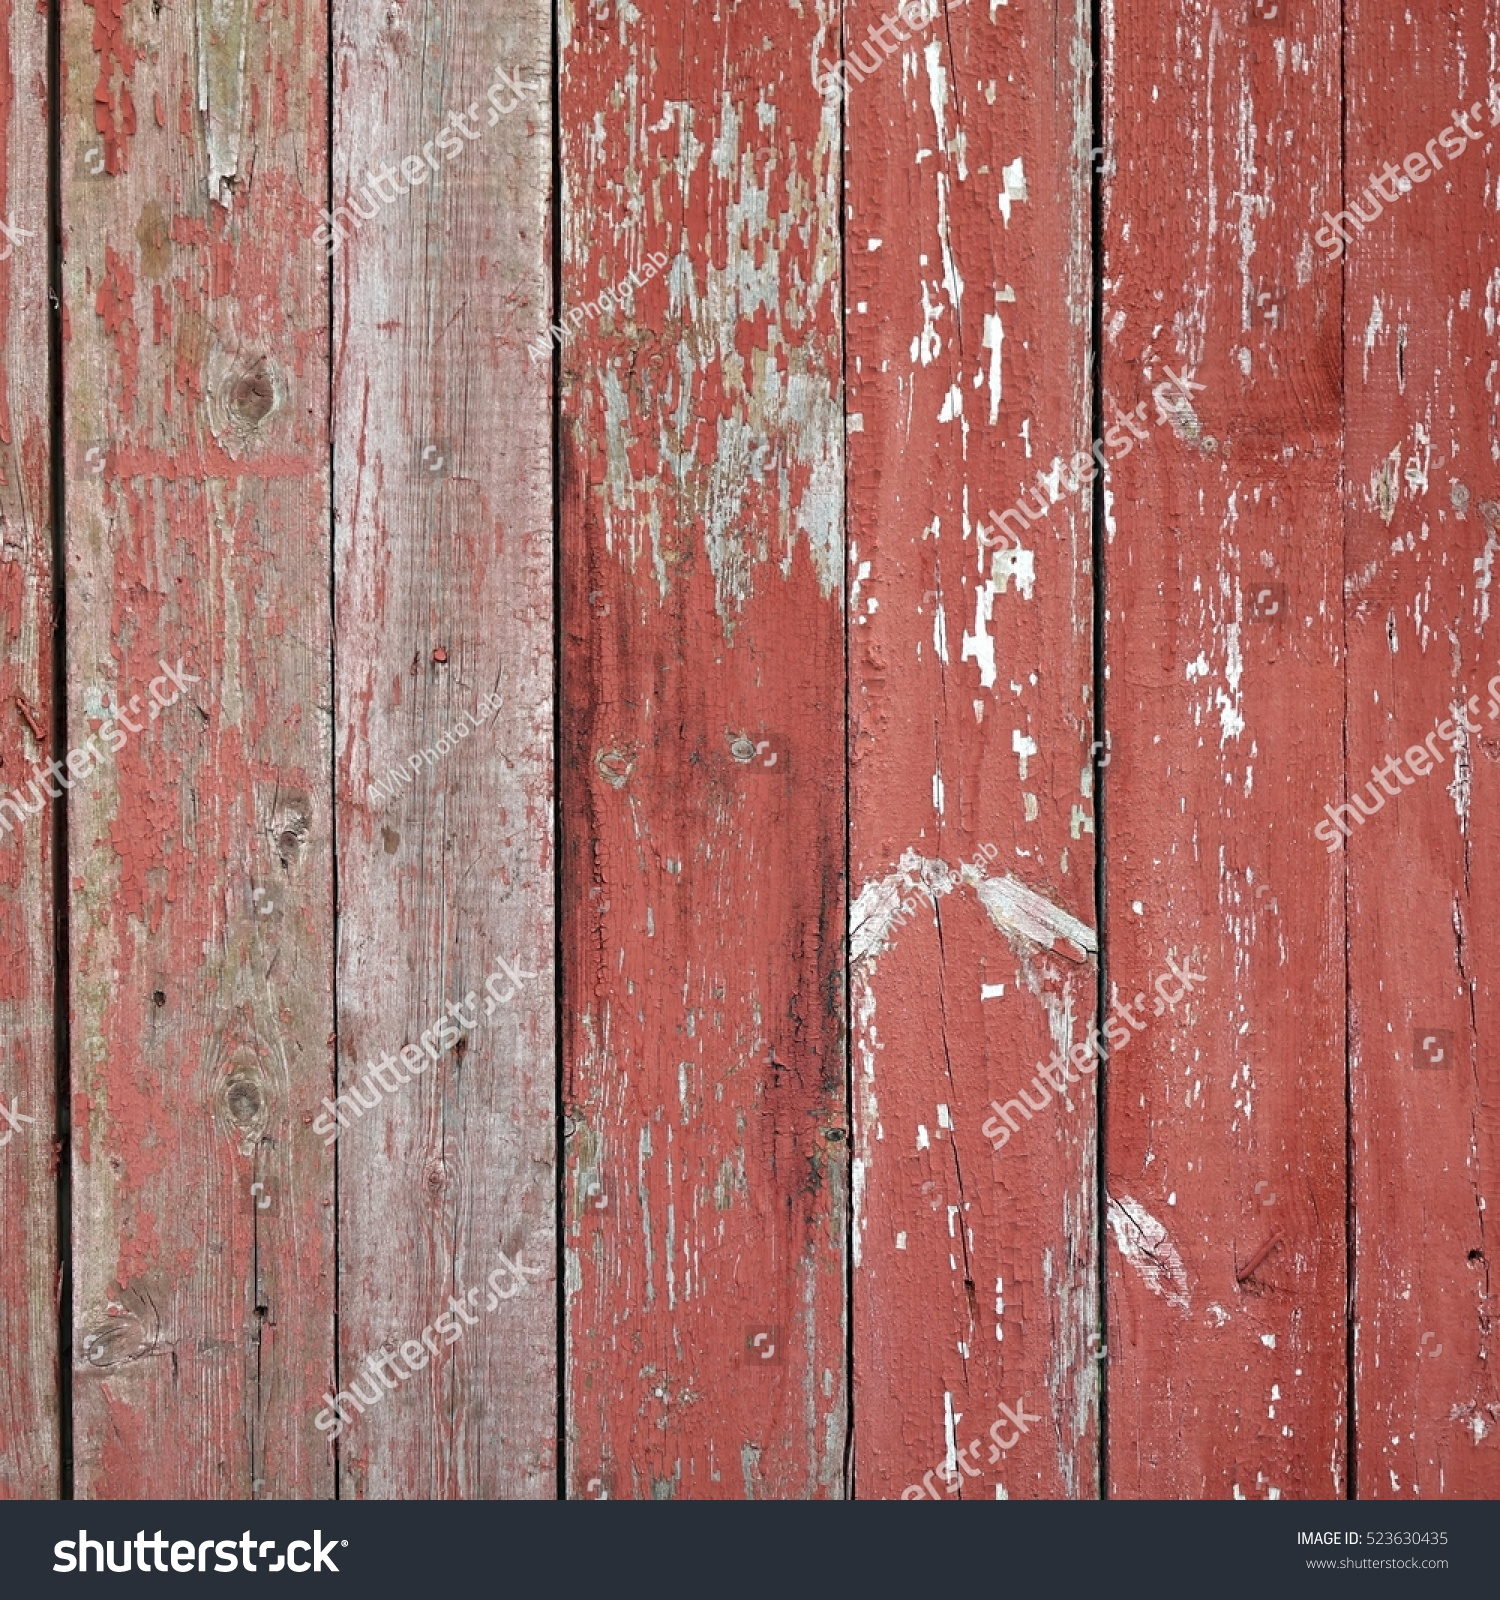 Amazing 80 red barn wood wallpaper inspiration design of for Where to buy old barn wood